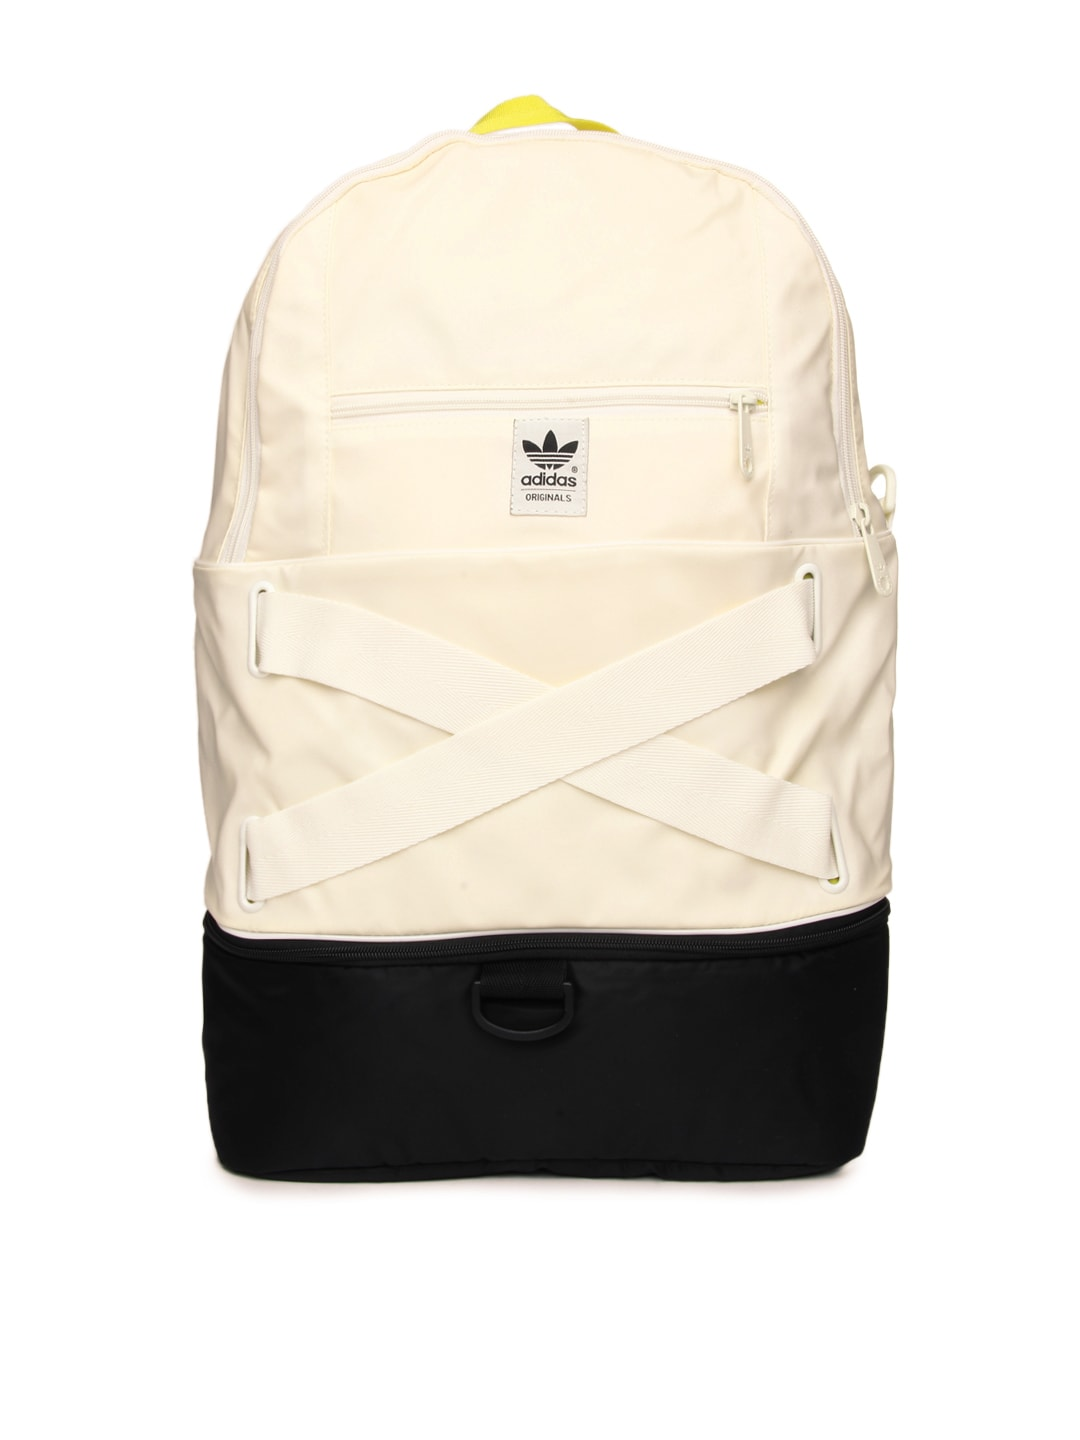 7bdab52ffb7 Buy adidas originals burns backpack   OFF71% Discounted